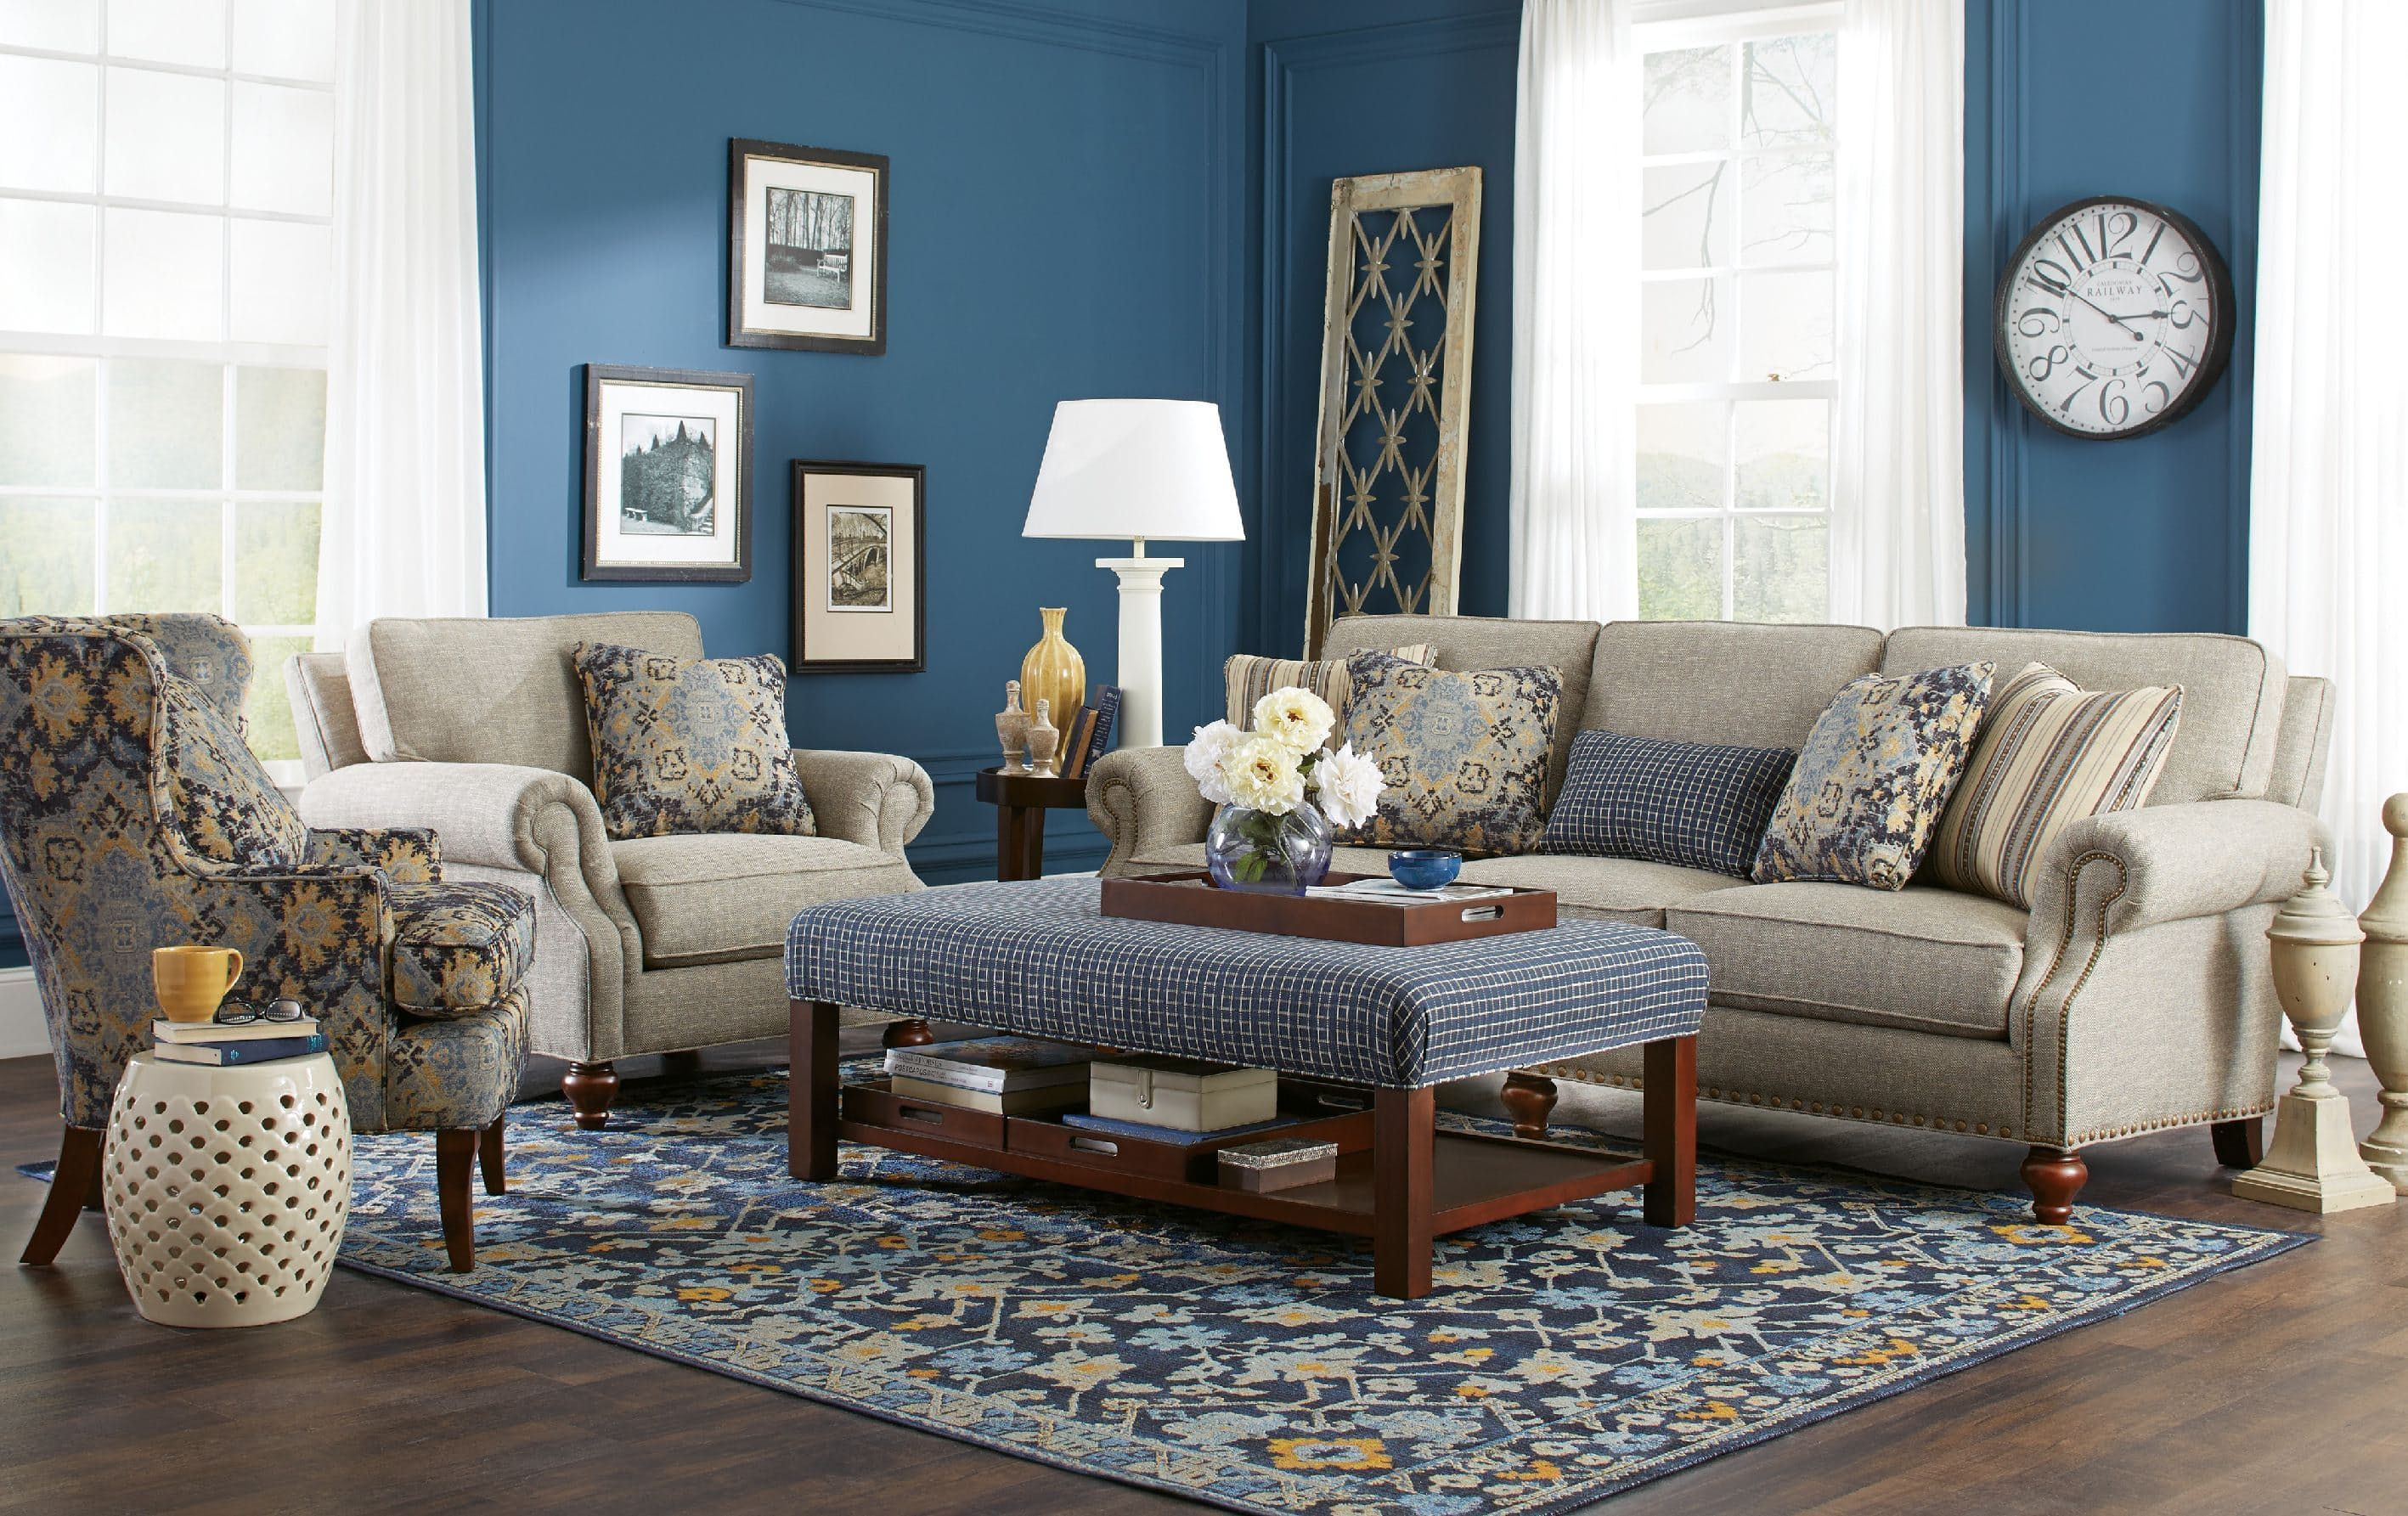 Craftmaster Living Room Sofa 762350   Tyndall Furniture Galleries, INC    Charlotte, Mooresville, Pineville NC And Fort Mill, SC